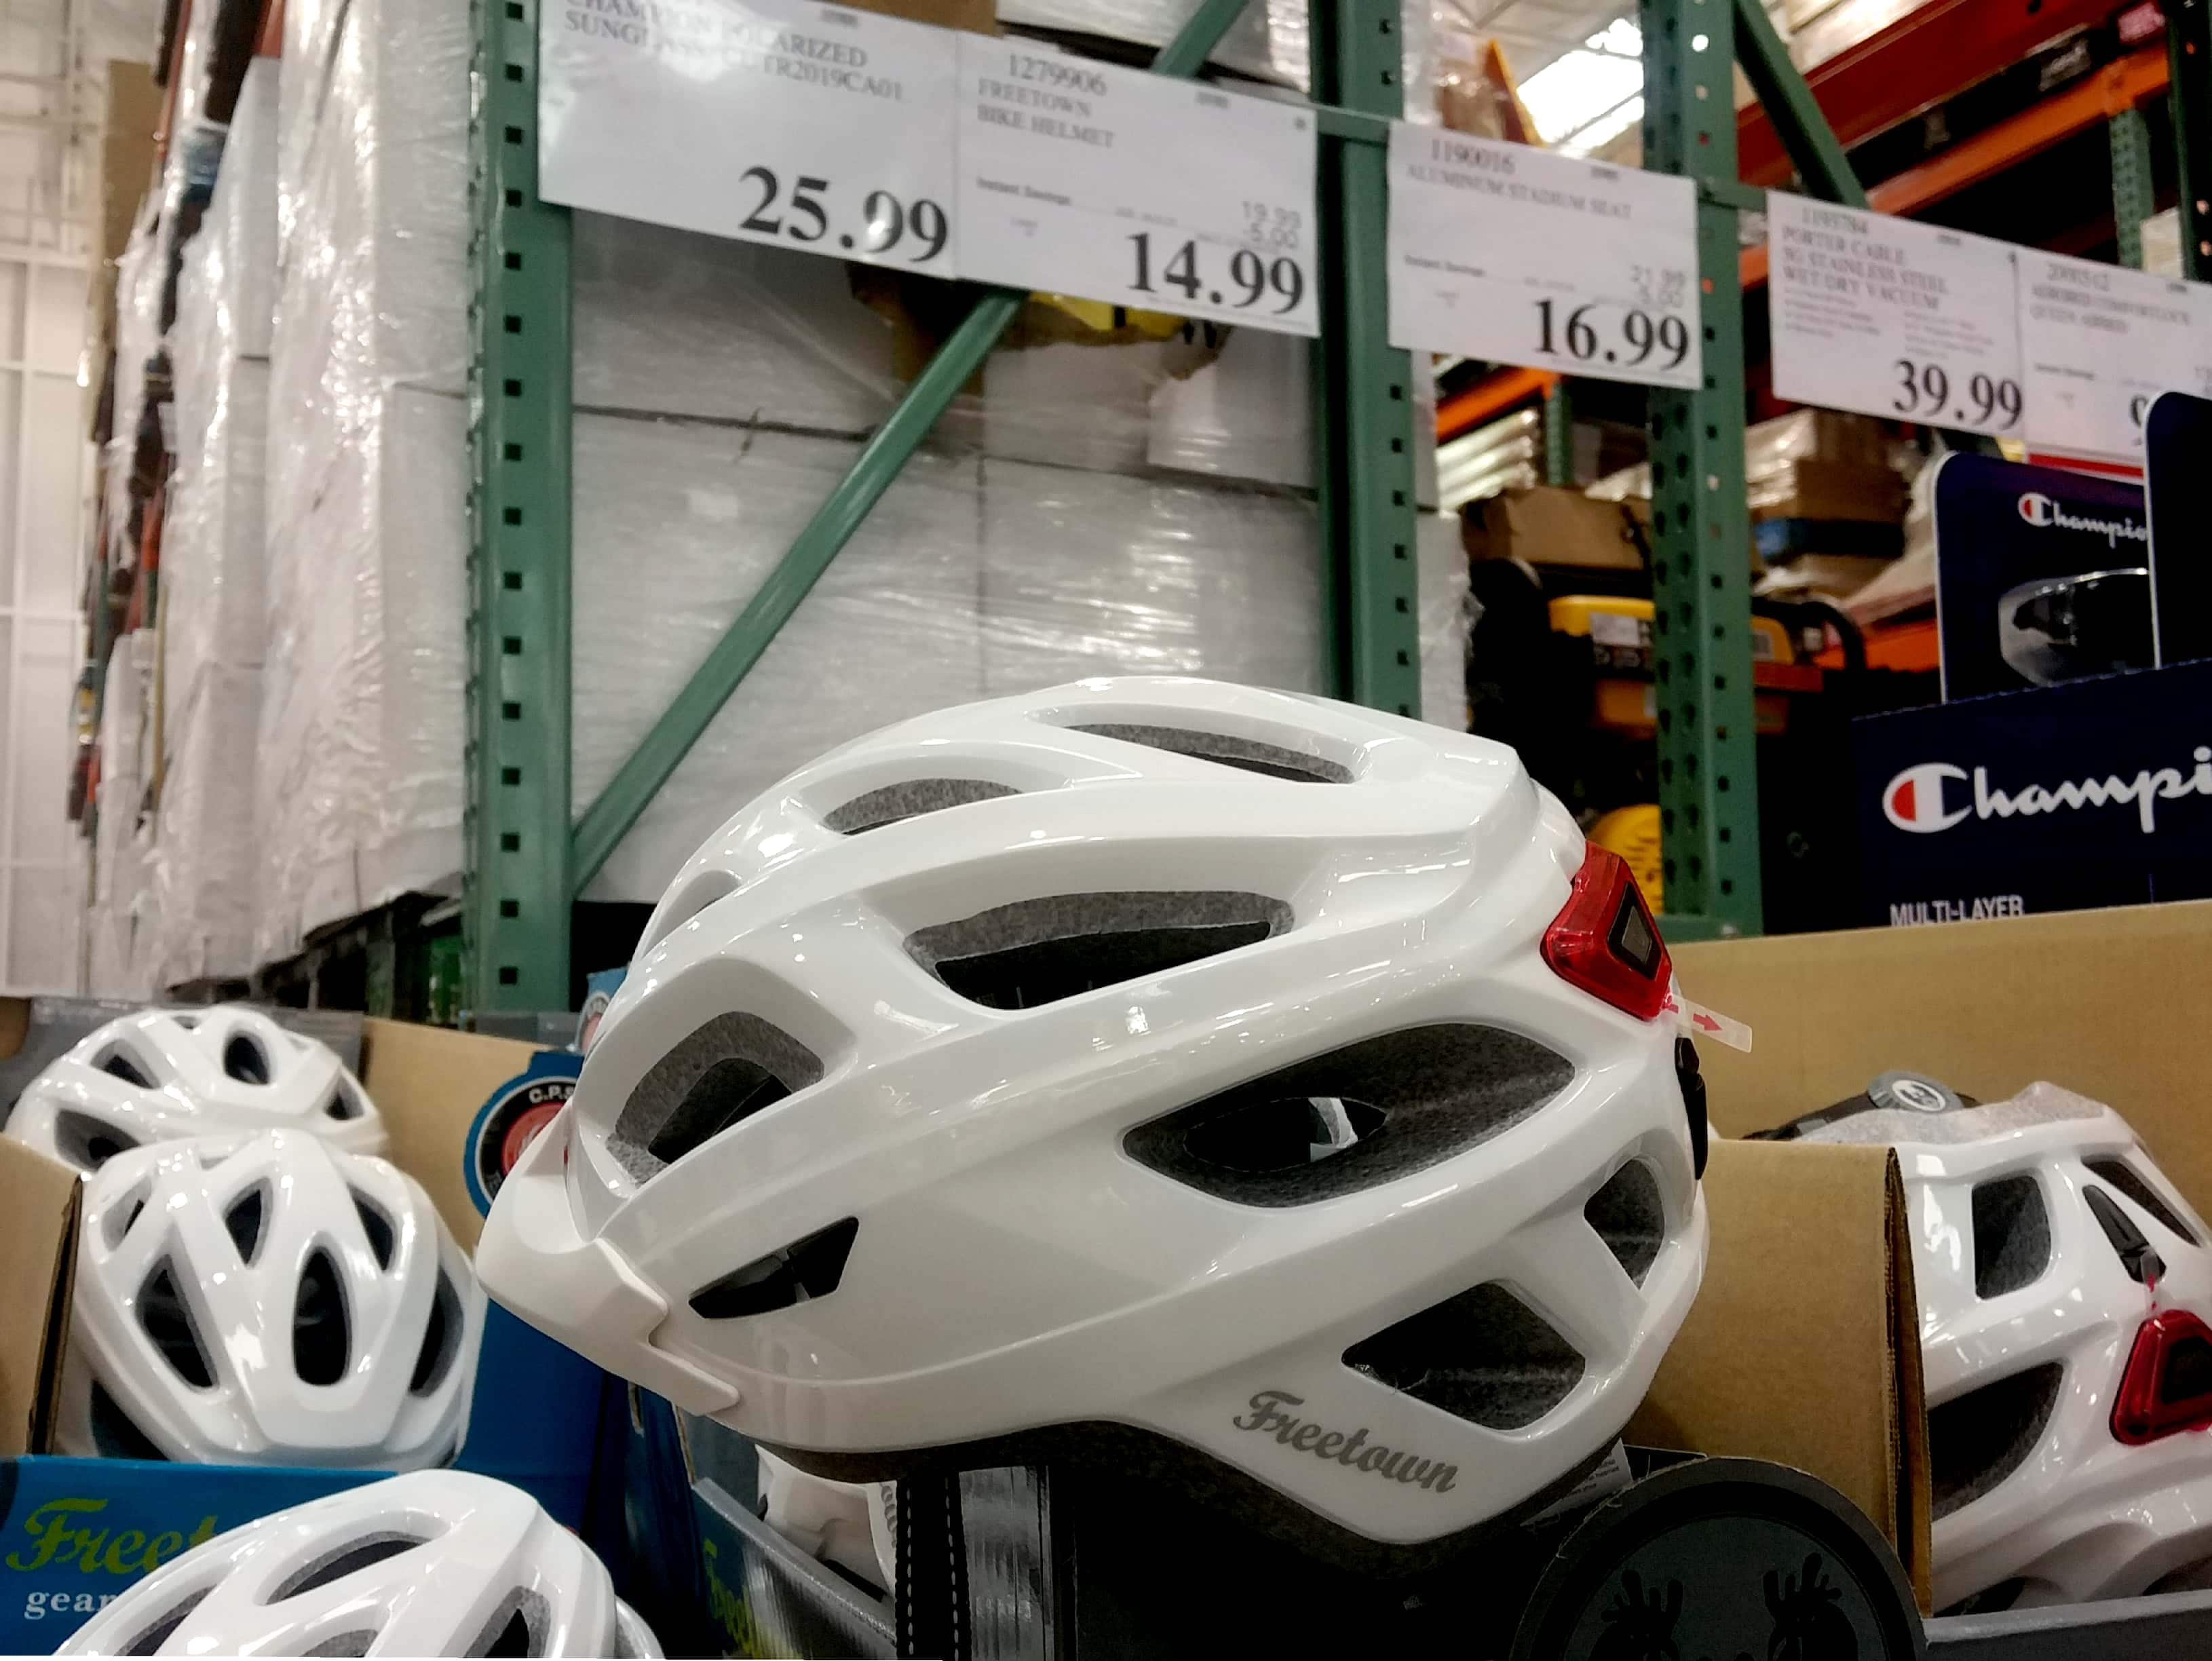 Freetown bike helmet Costco B&M for $15 ymmv